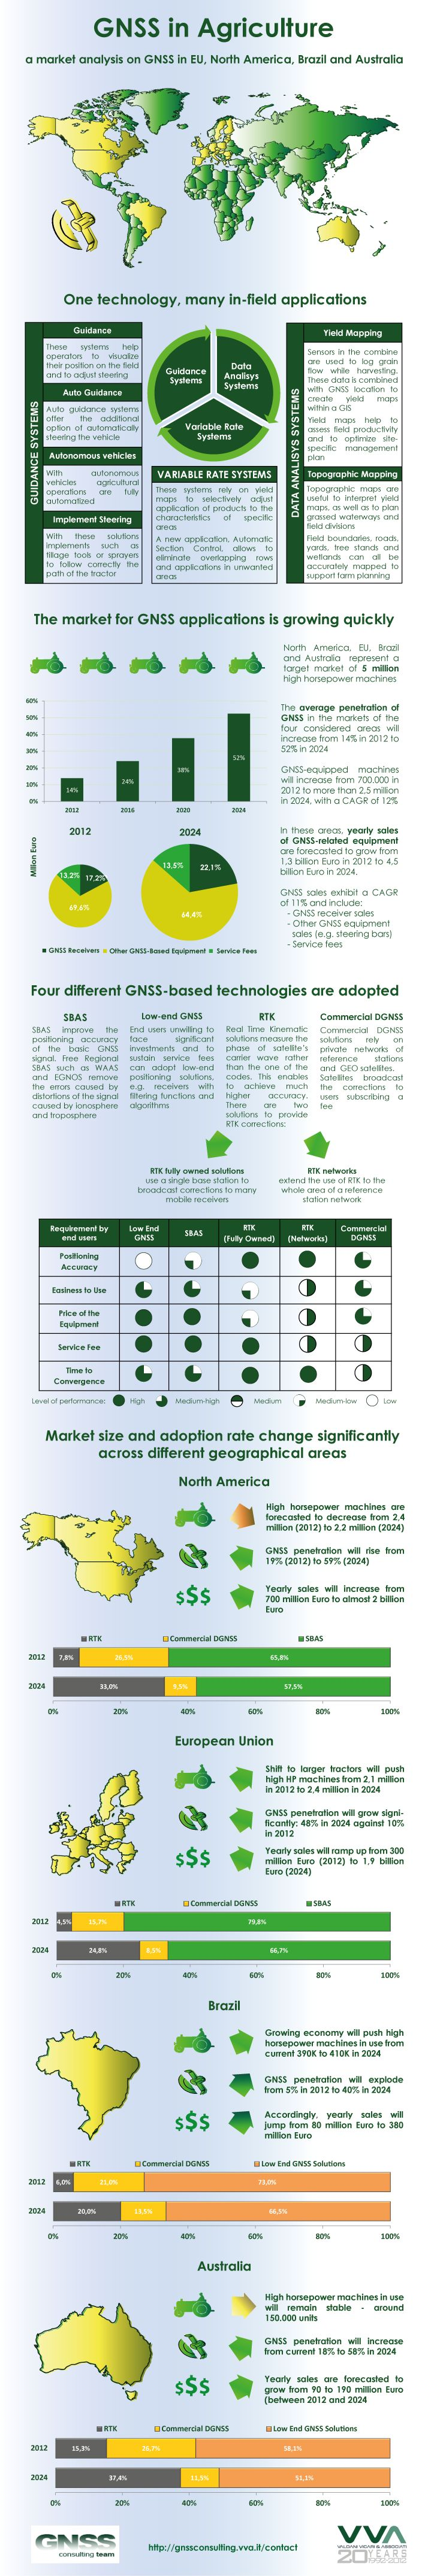 infographic about GNSS in agriculture market analysis, nov. 2012.